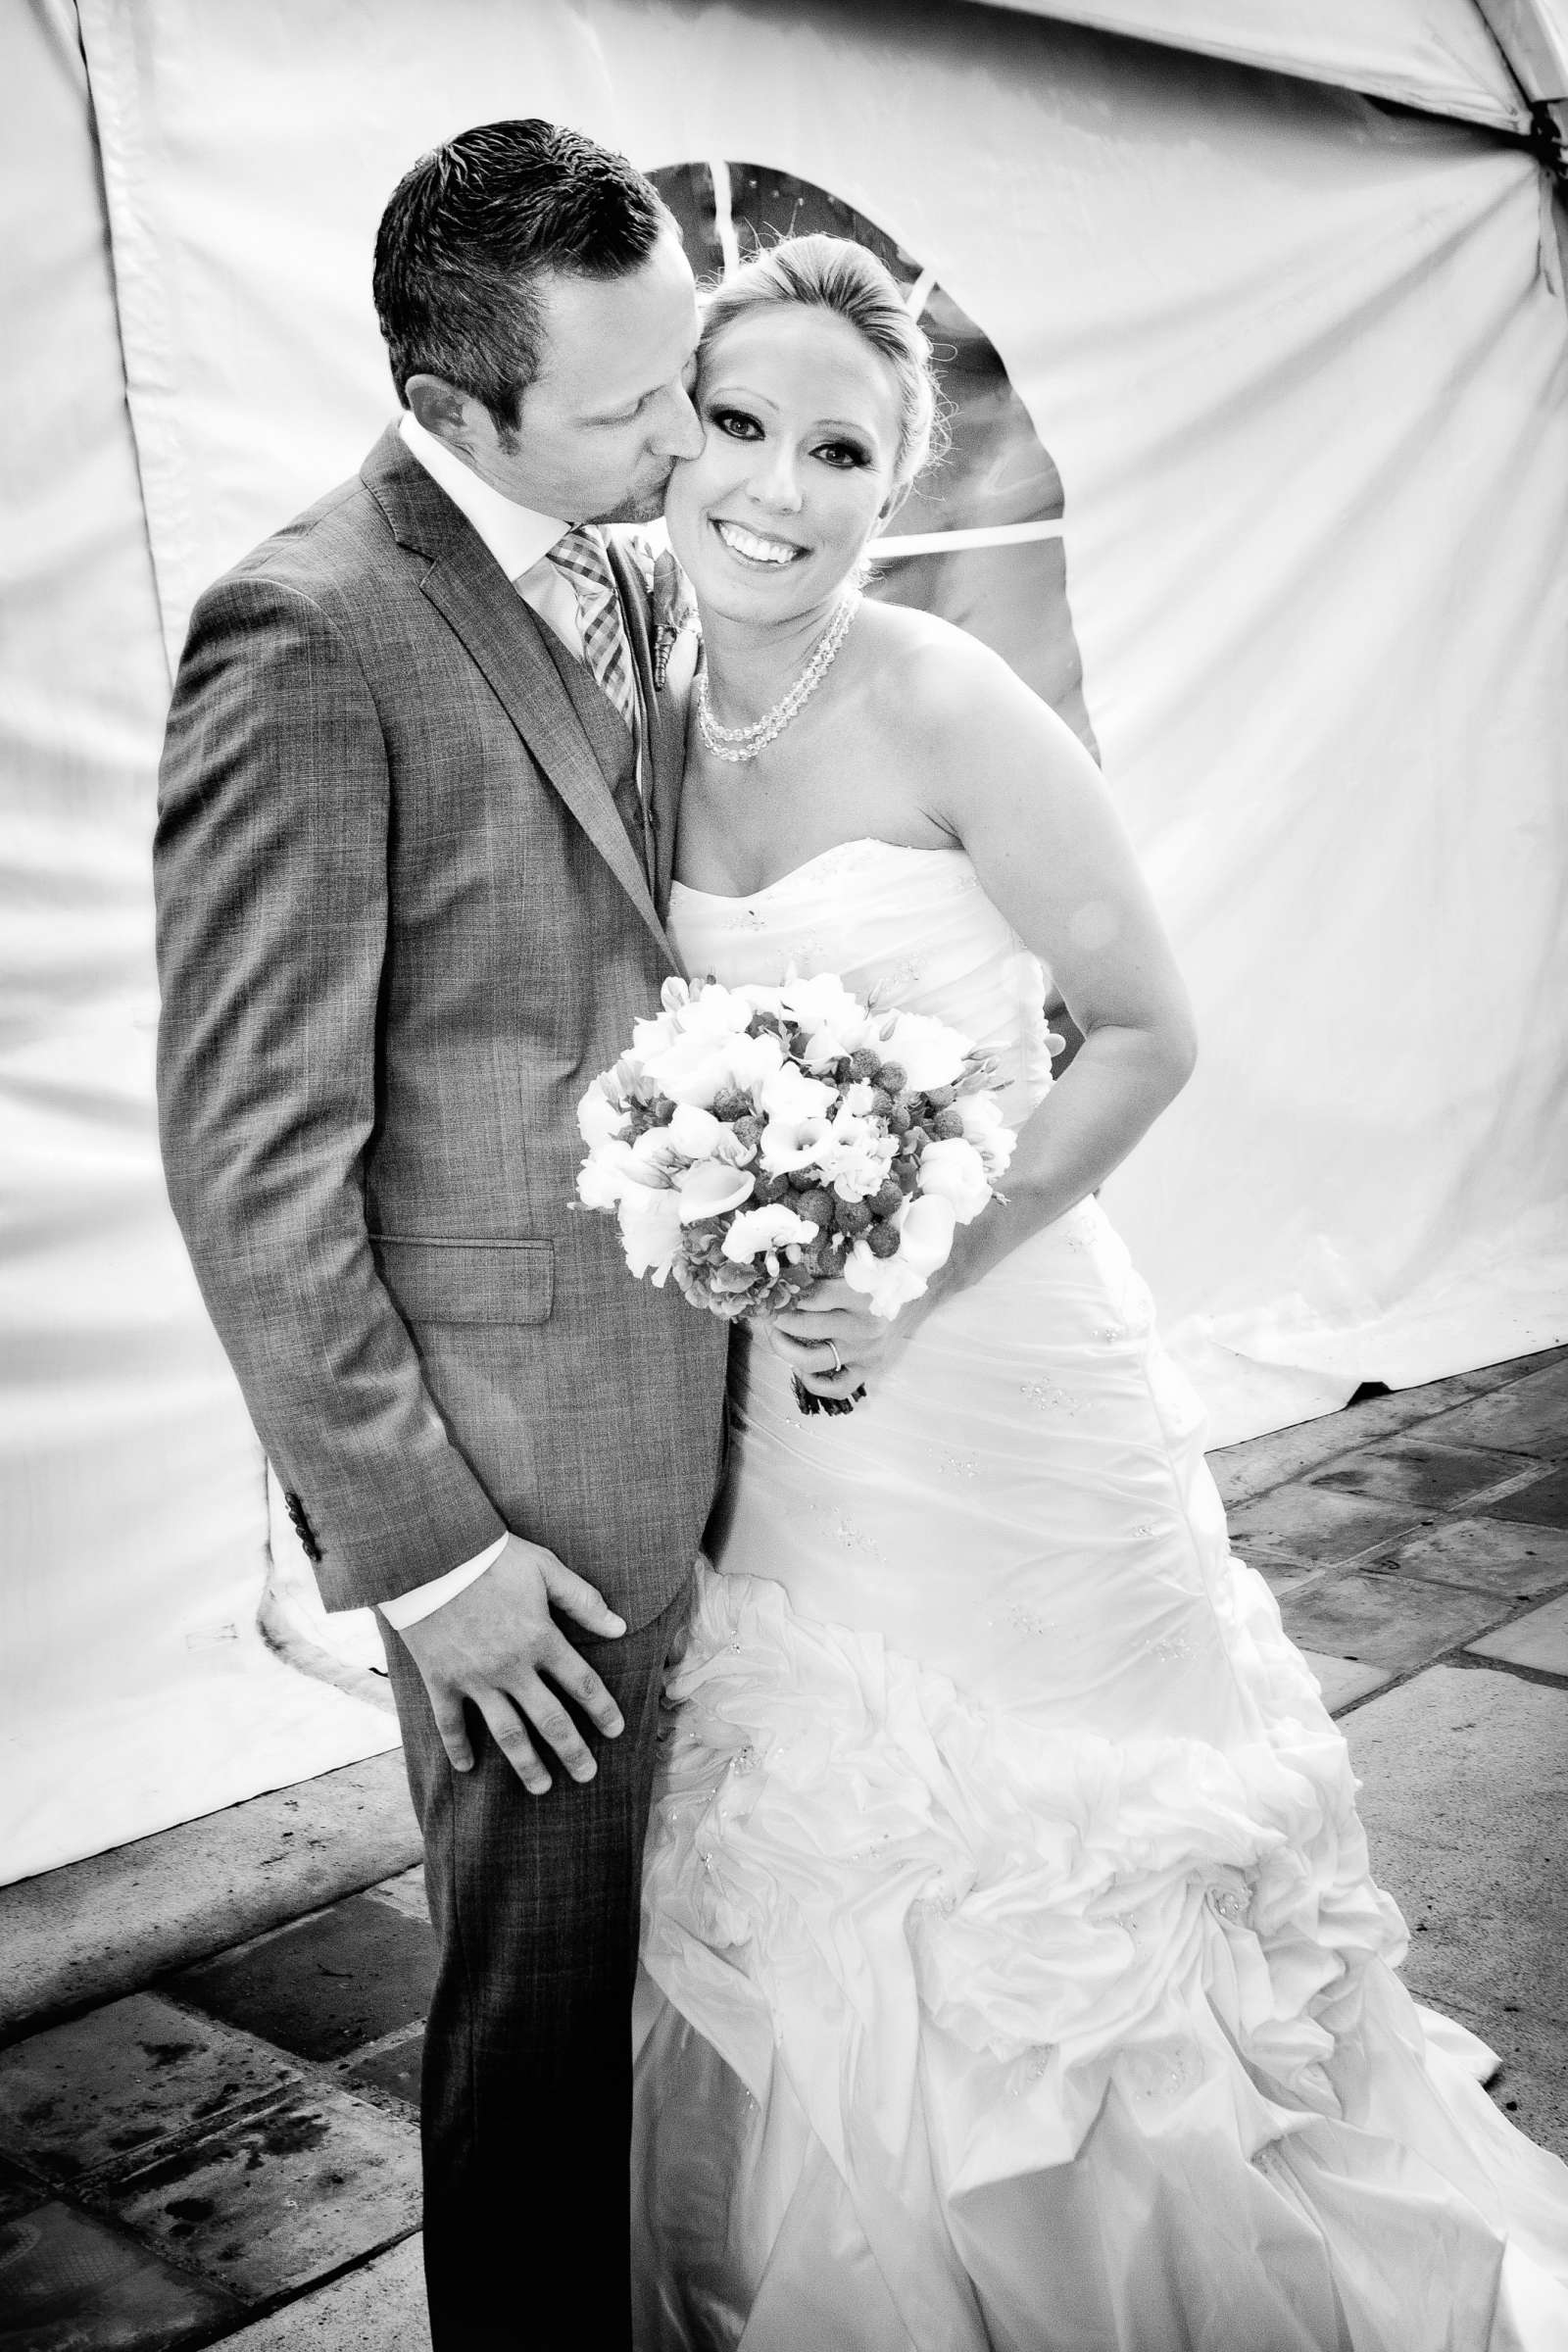 Orfila Vineyards Wedding, Mindy and Bryan Wedding Photo #28 by True Photography